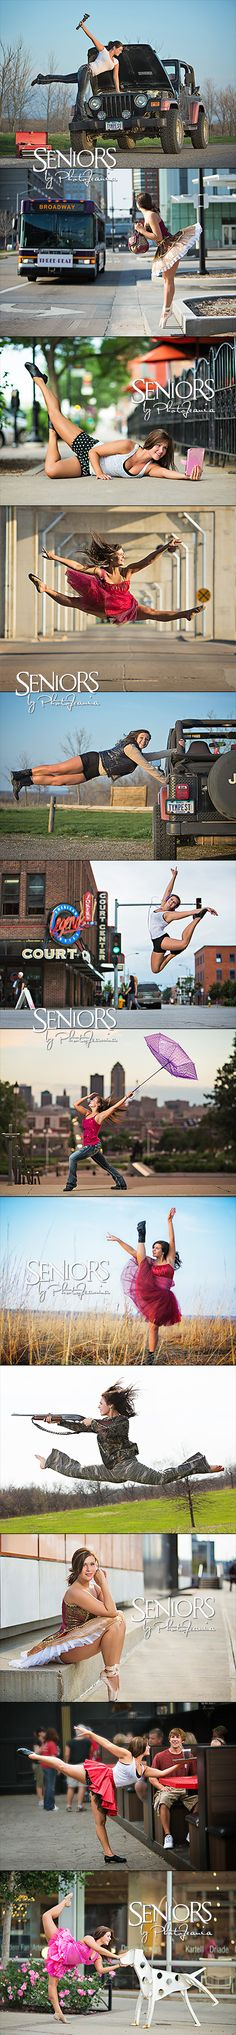 Dance Senior Picture Ideas. The Queen of Lifestyle Dance Senior Pictures Class of 2014 Senior Model Tympest Crawford. In six hours of nothing but dance pictures, she tried just about every crazy idea we could come up with. #danceseniorpictureideas #danceseniorpictures #seniorsbyphotojeania